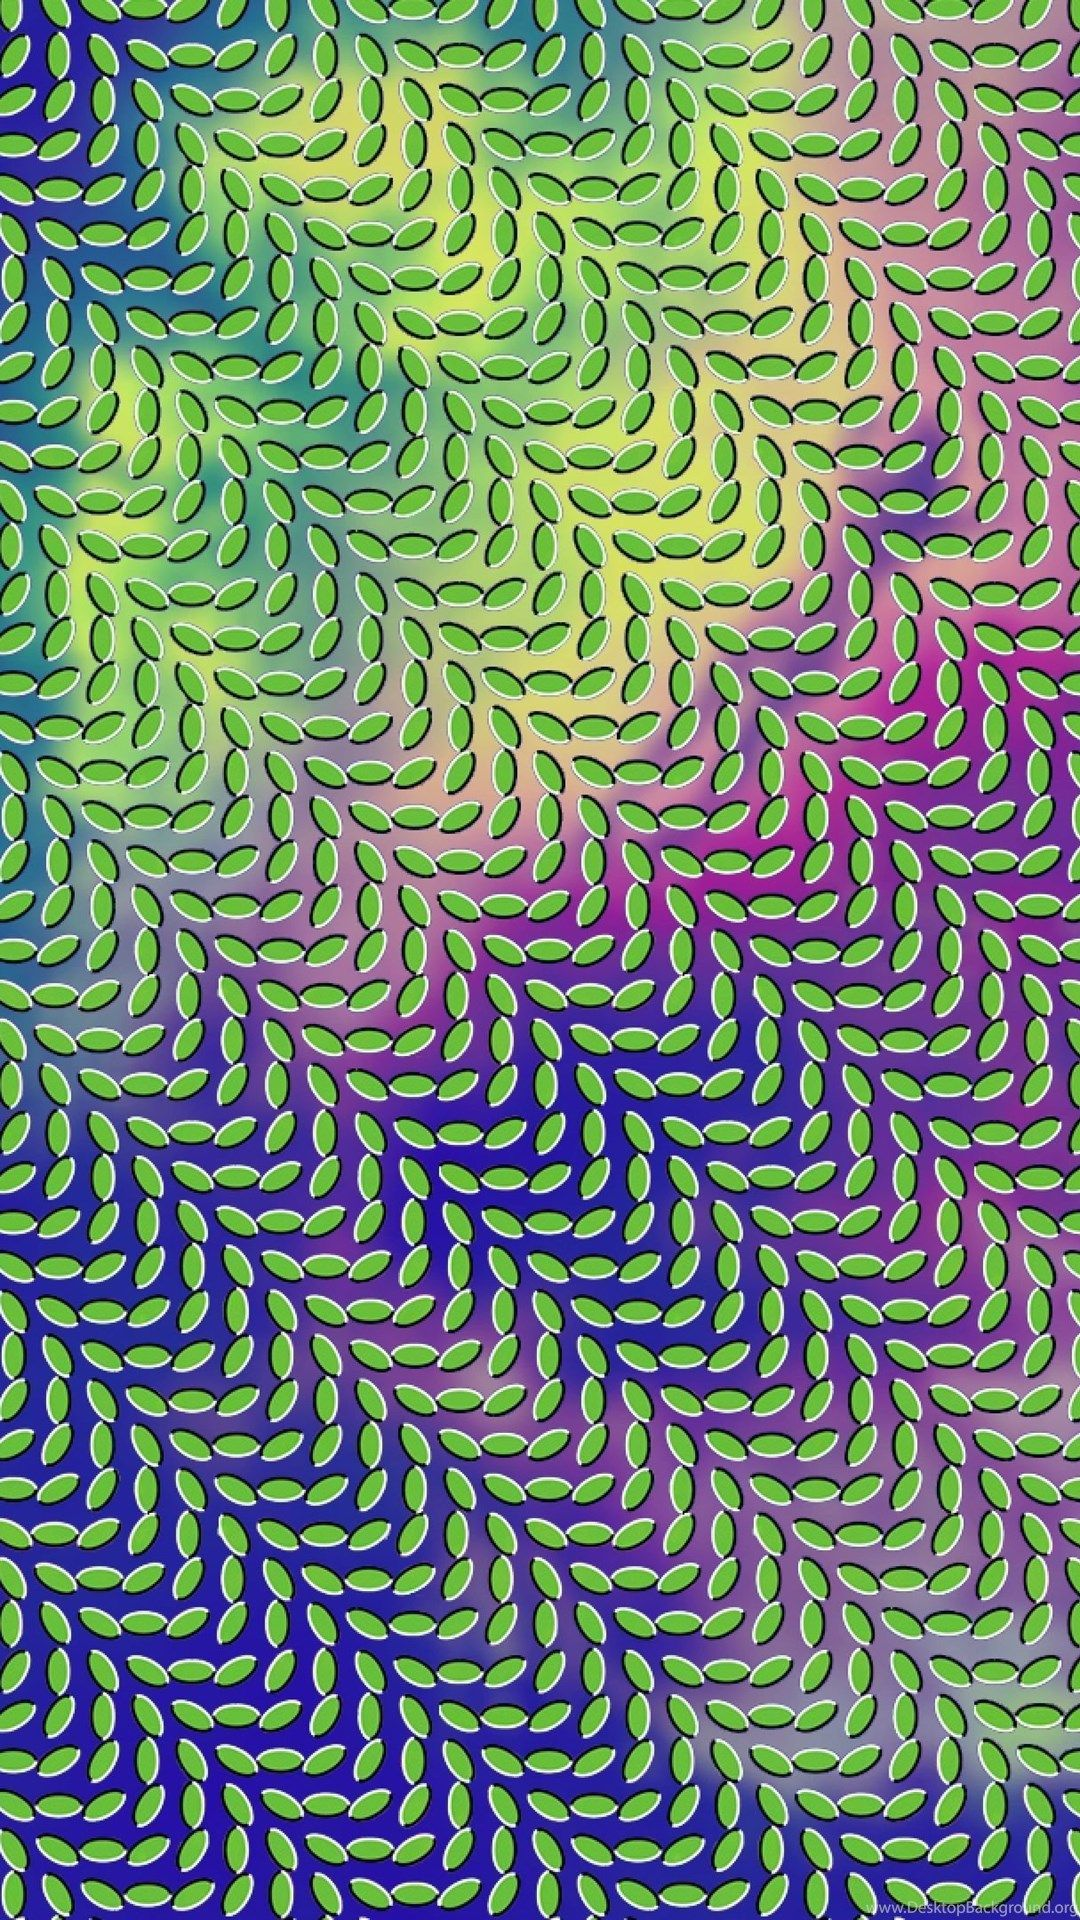 Download Ultra Hd Optical Illusion Wallpapers Hd, Desktop Backgrounds